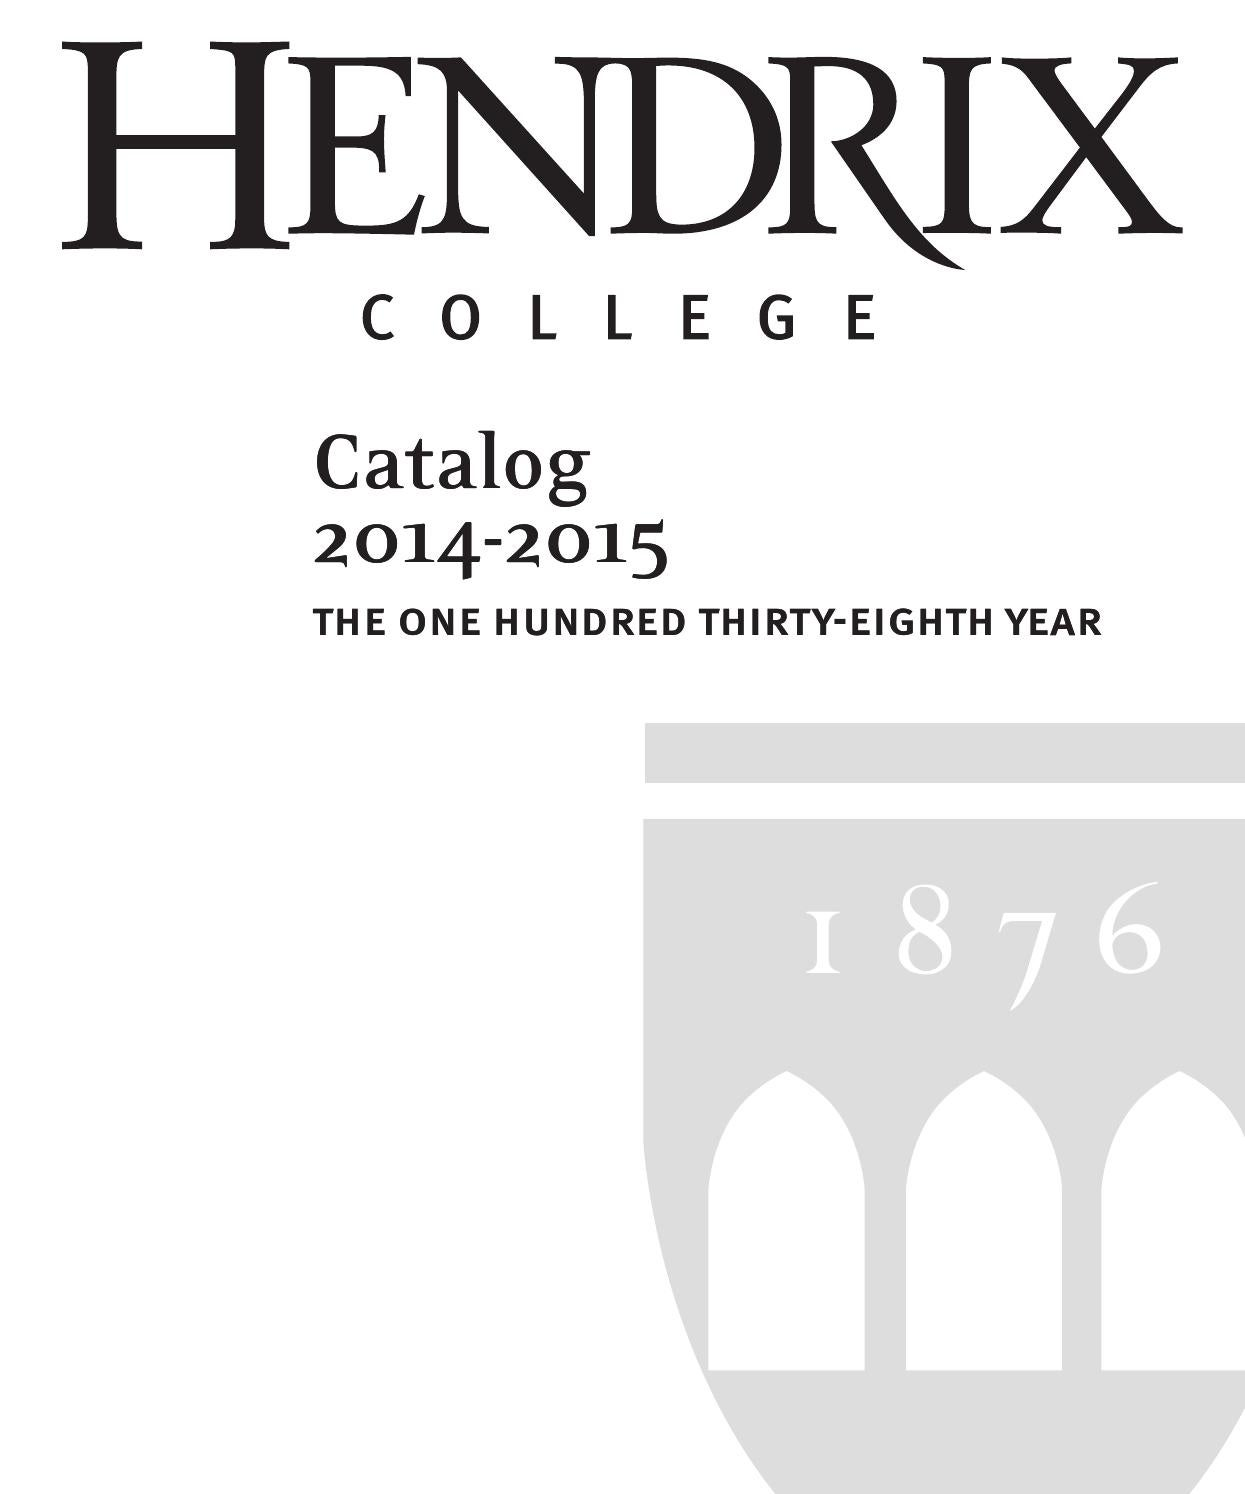 Hendrix catalog 2014 2015 by hendrix college issuu fandeluxe Gallery